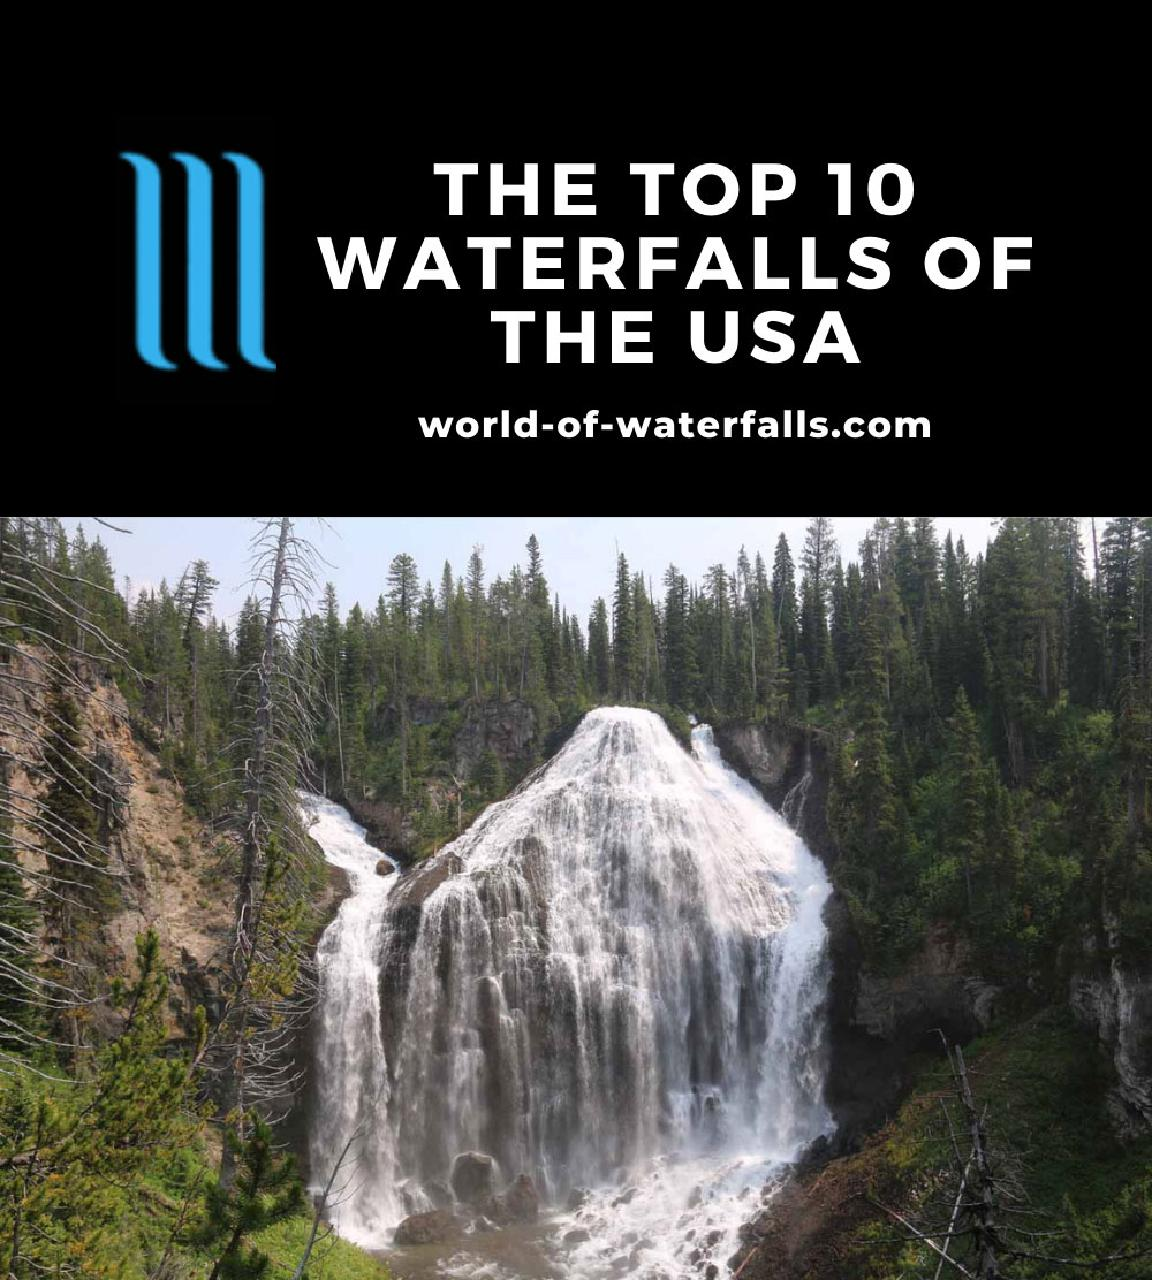 The Top 10 Waterfalls of the USA